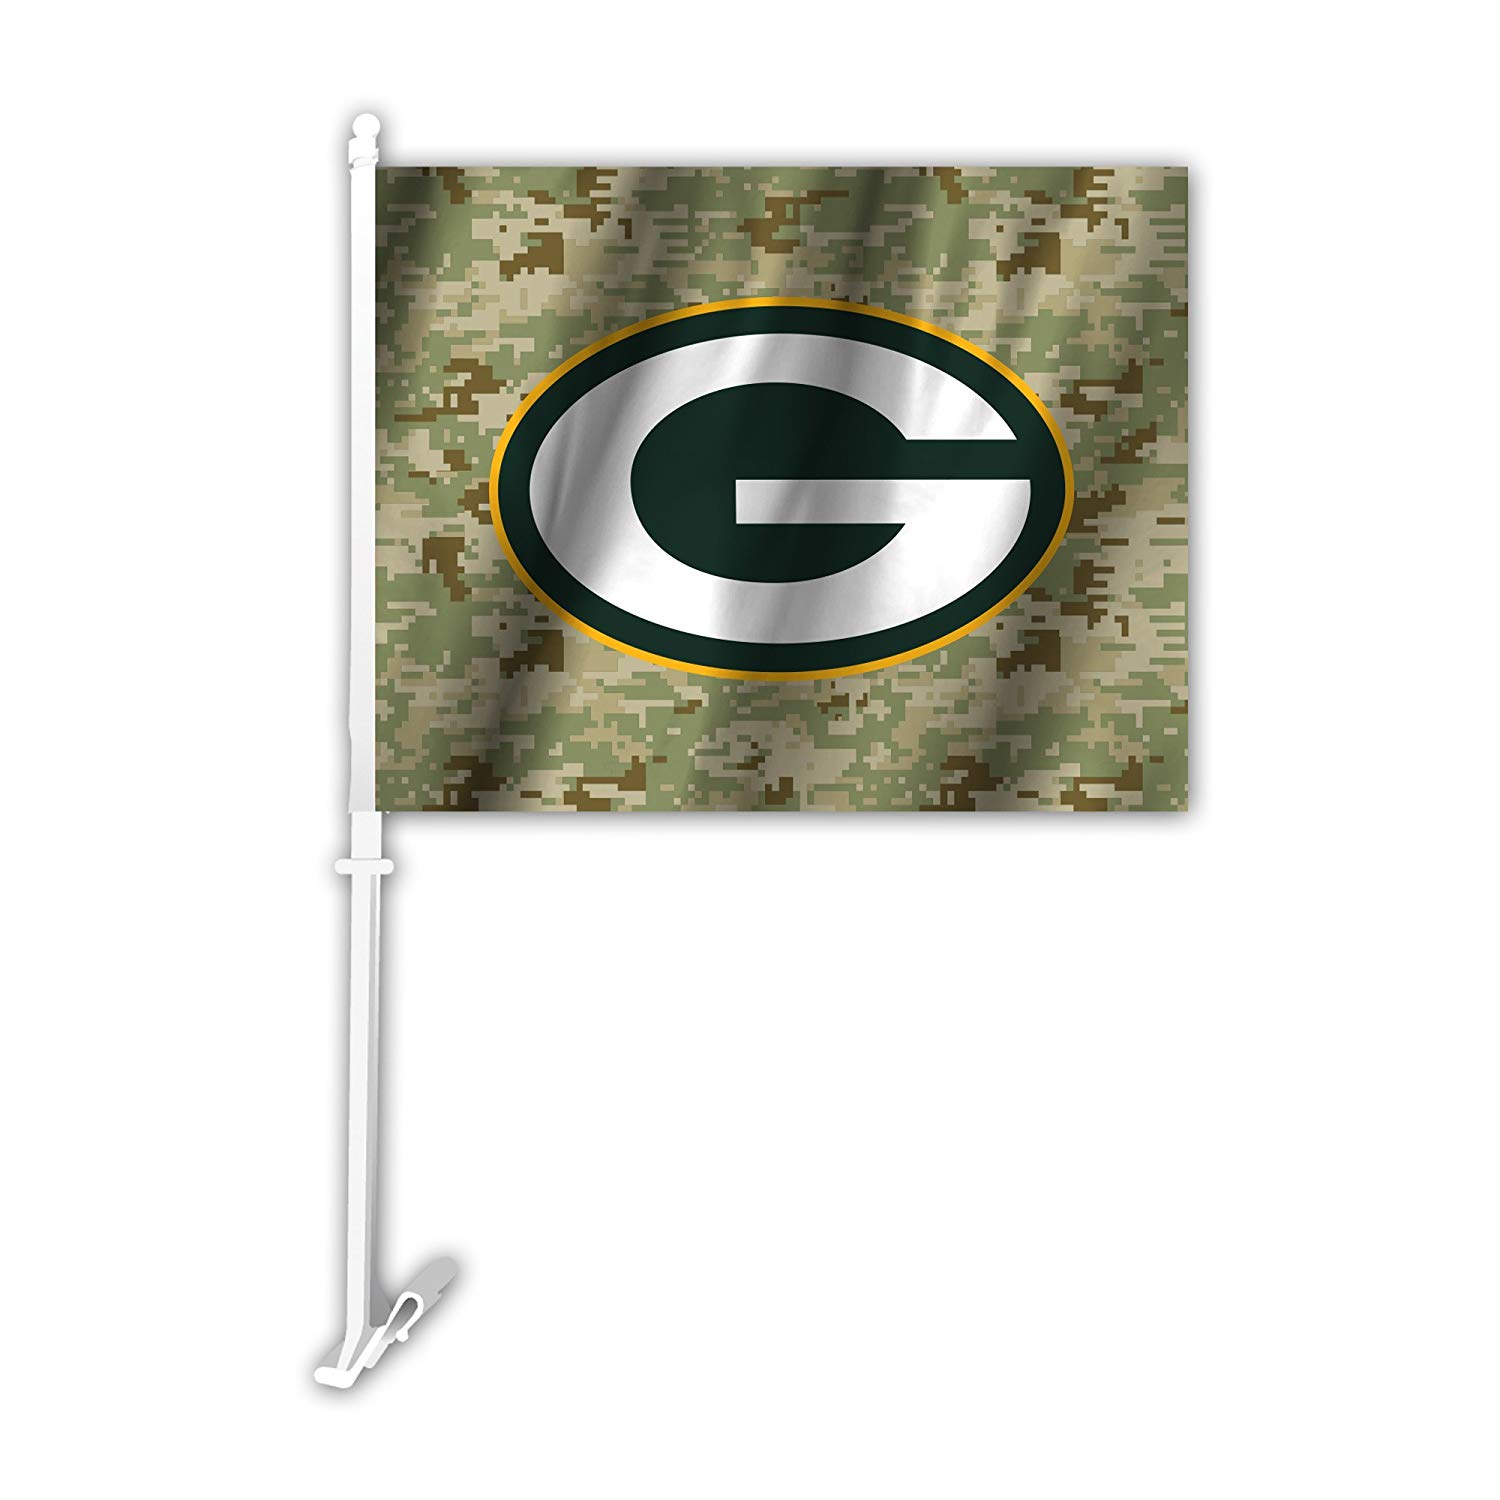 Amazoncom NFL Green Bay Packers Camo Car Flag Green One Size 1500x1500